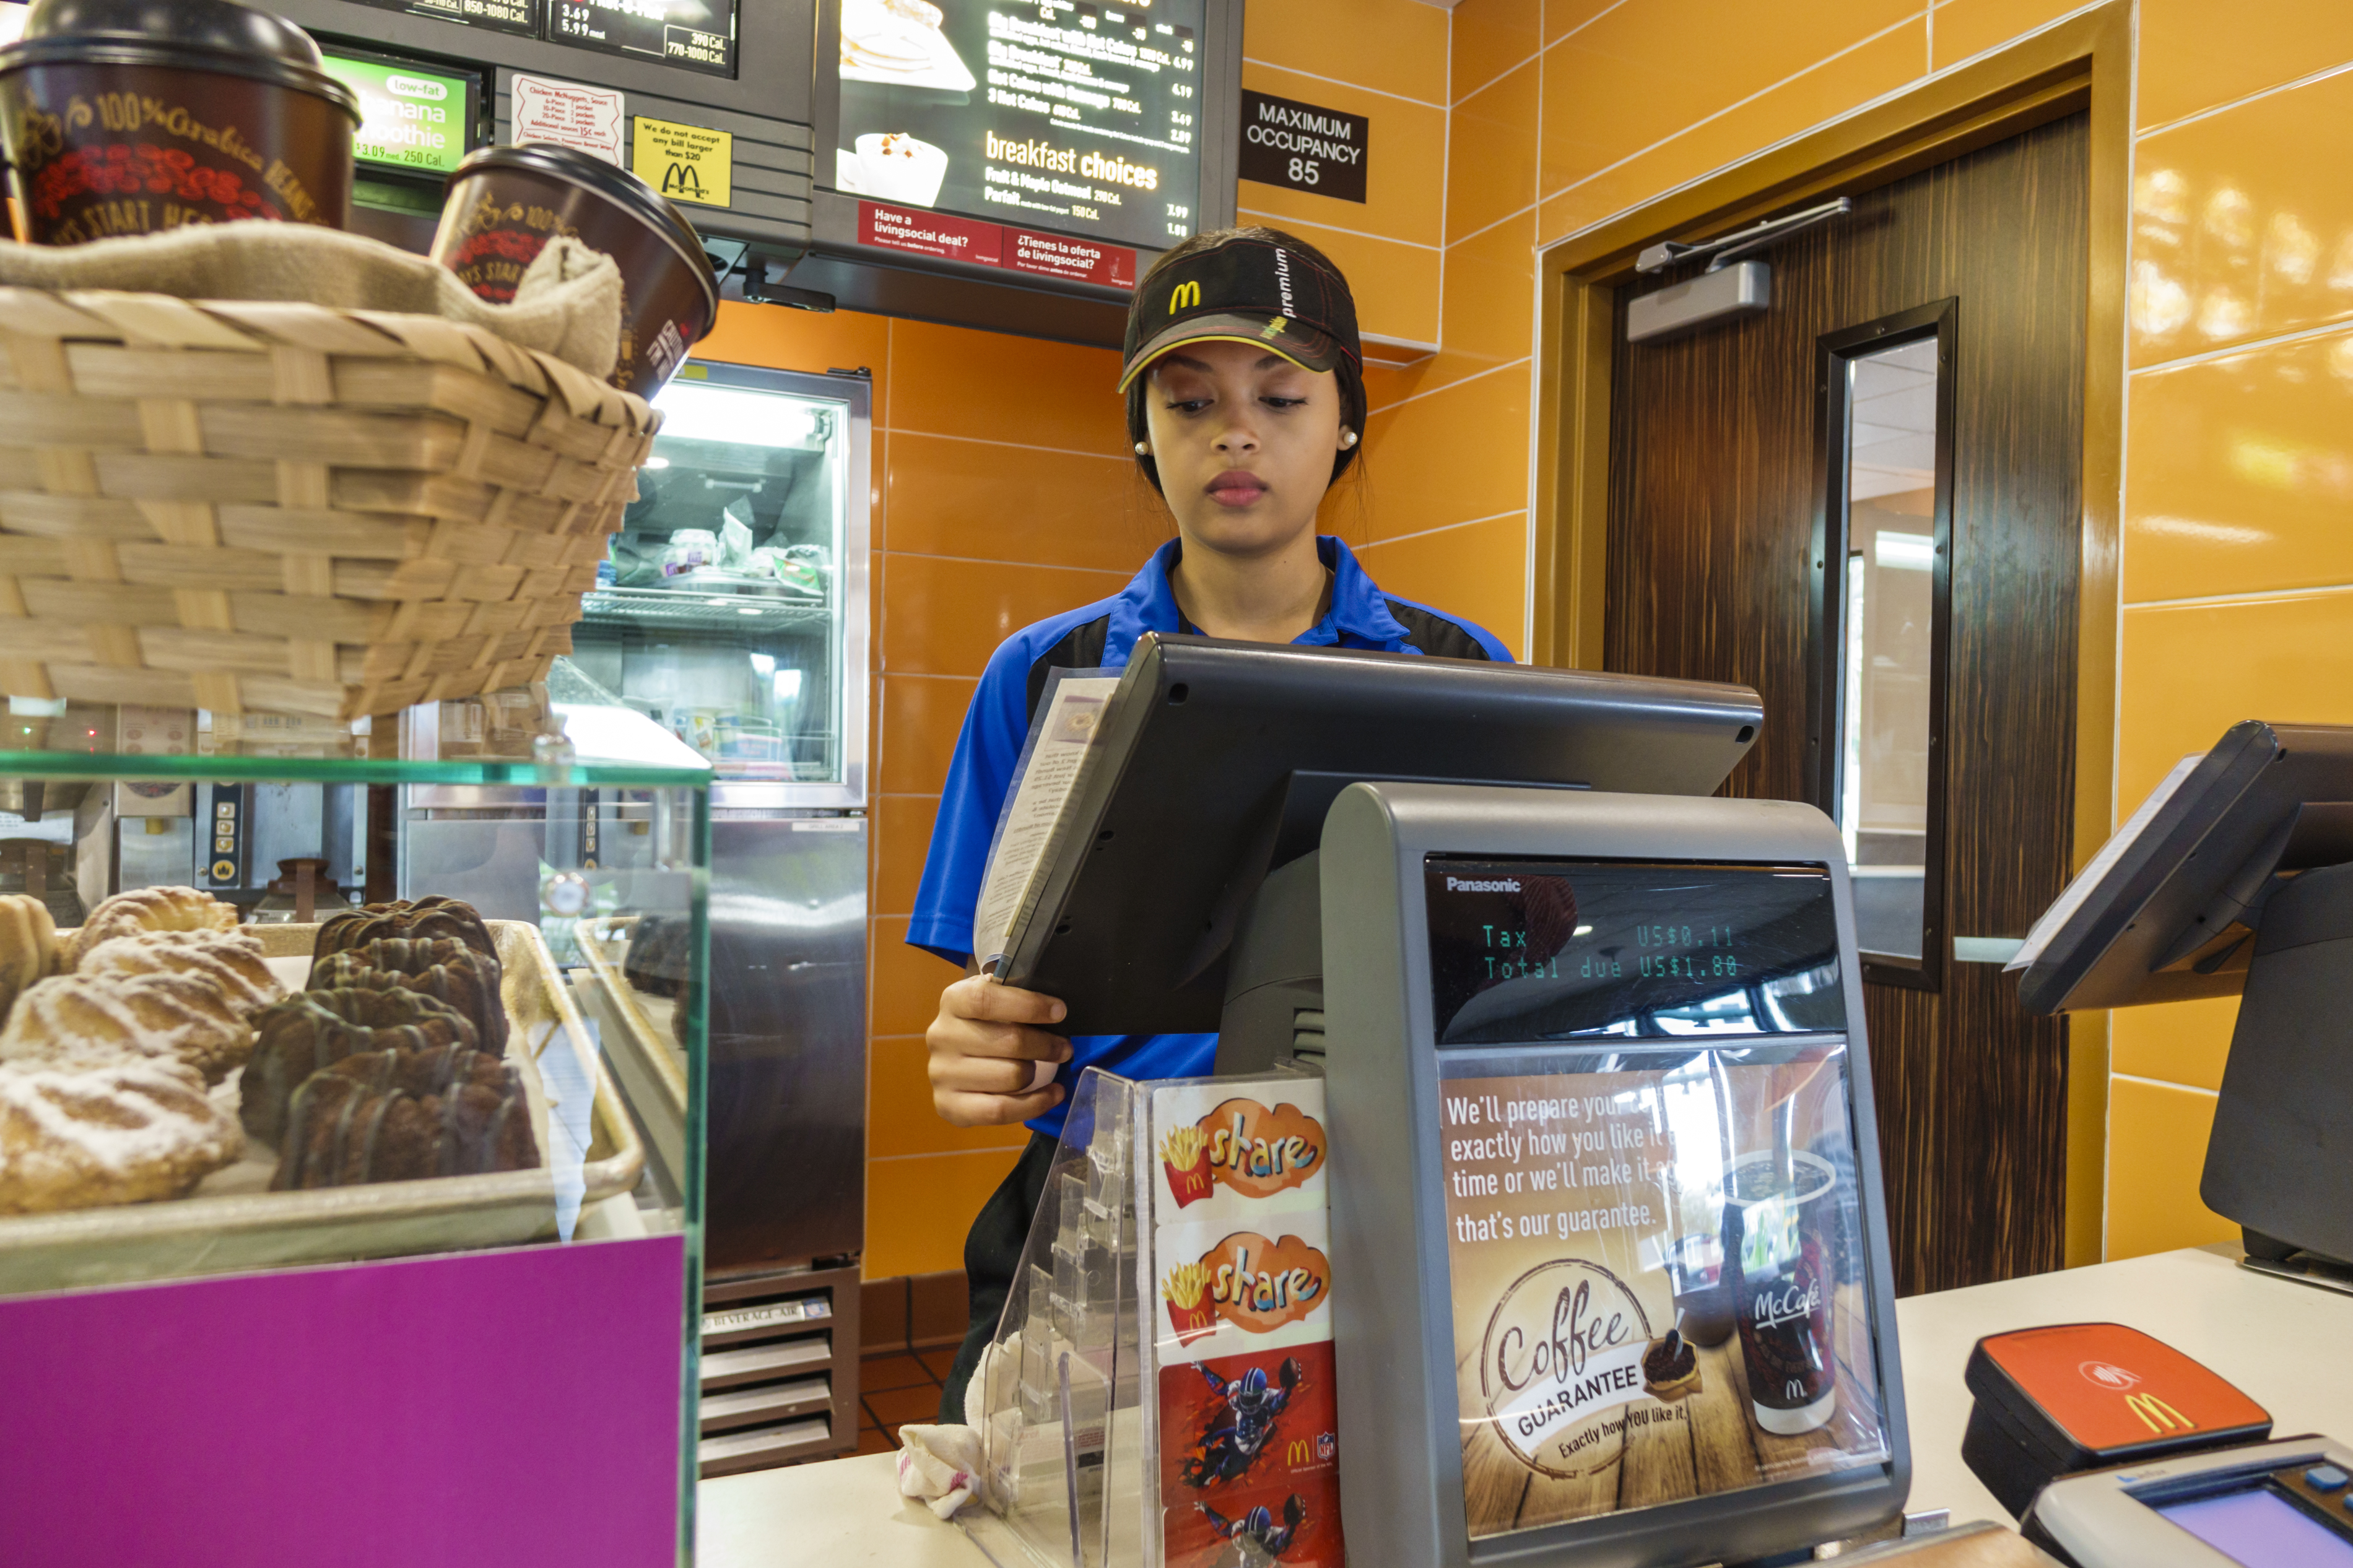 A woman employee at the counter in McDonald's.